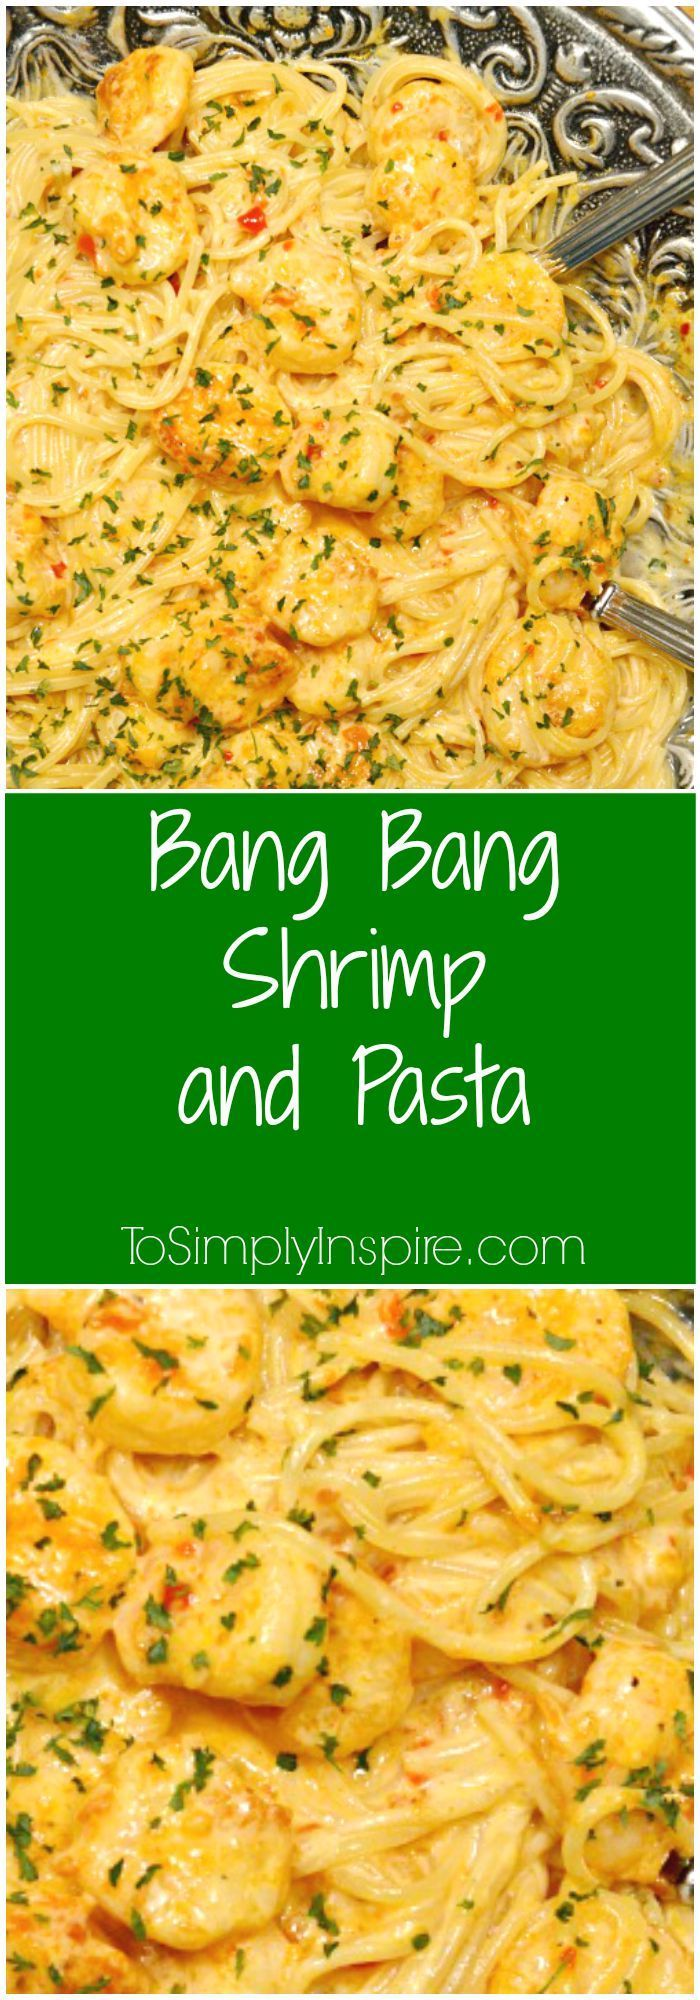 This Bang Bang Shrimp and Pasta has the most scrumptious, creamy sauce. Plus it's ready in about 20 minutes!